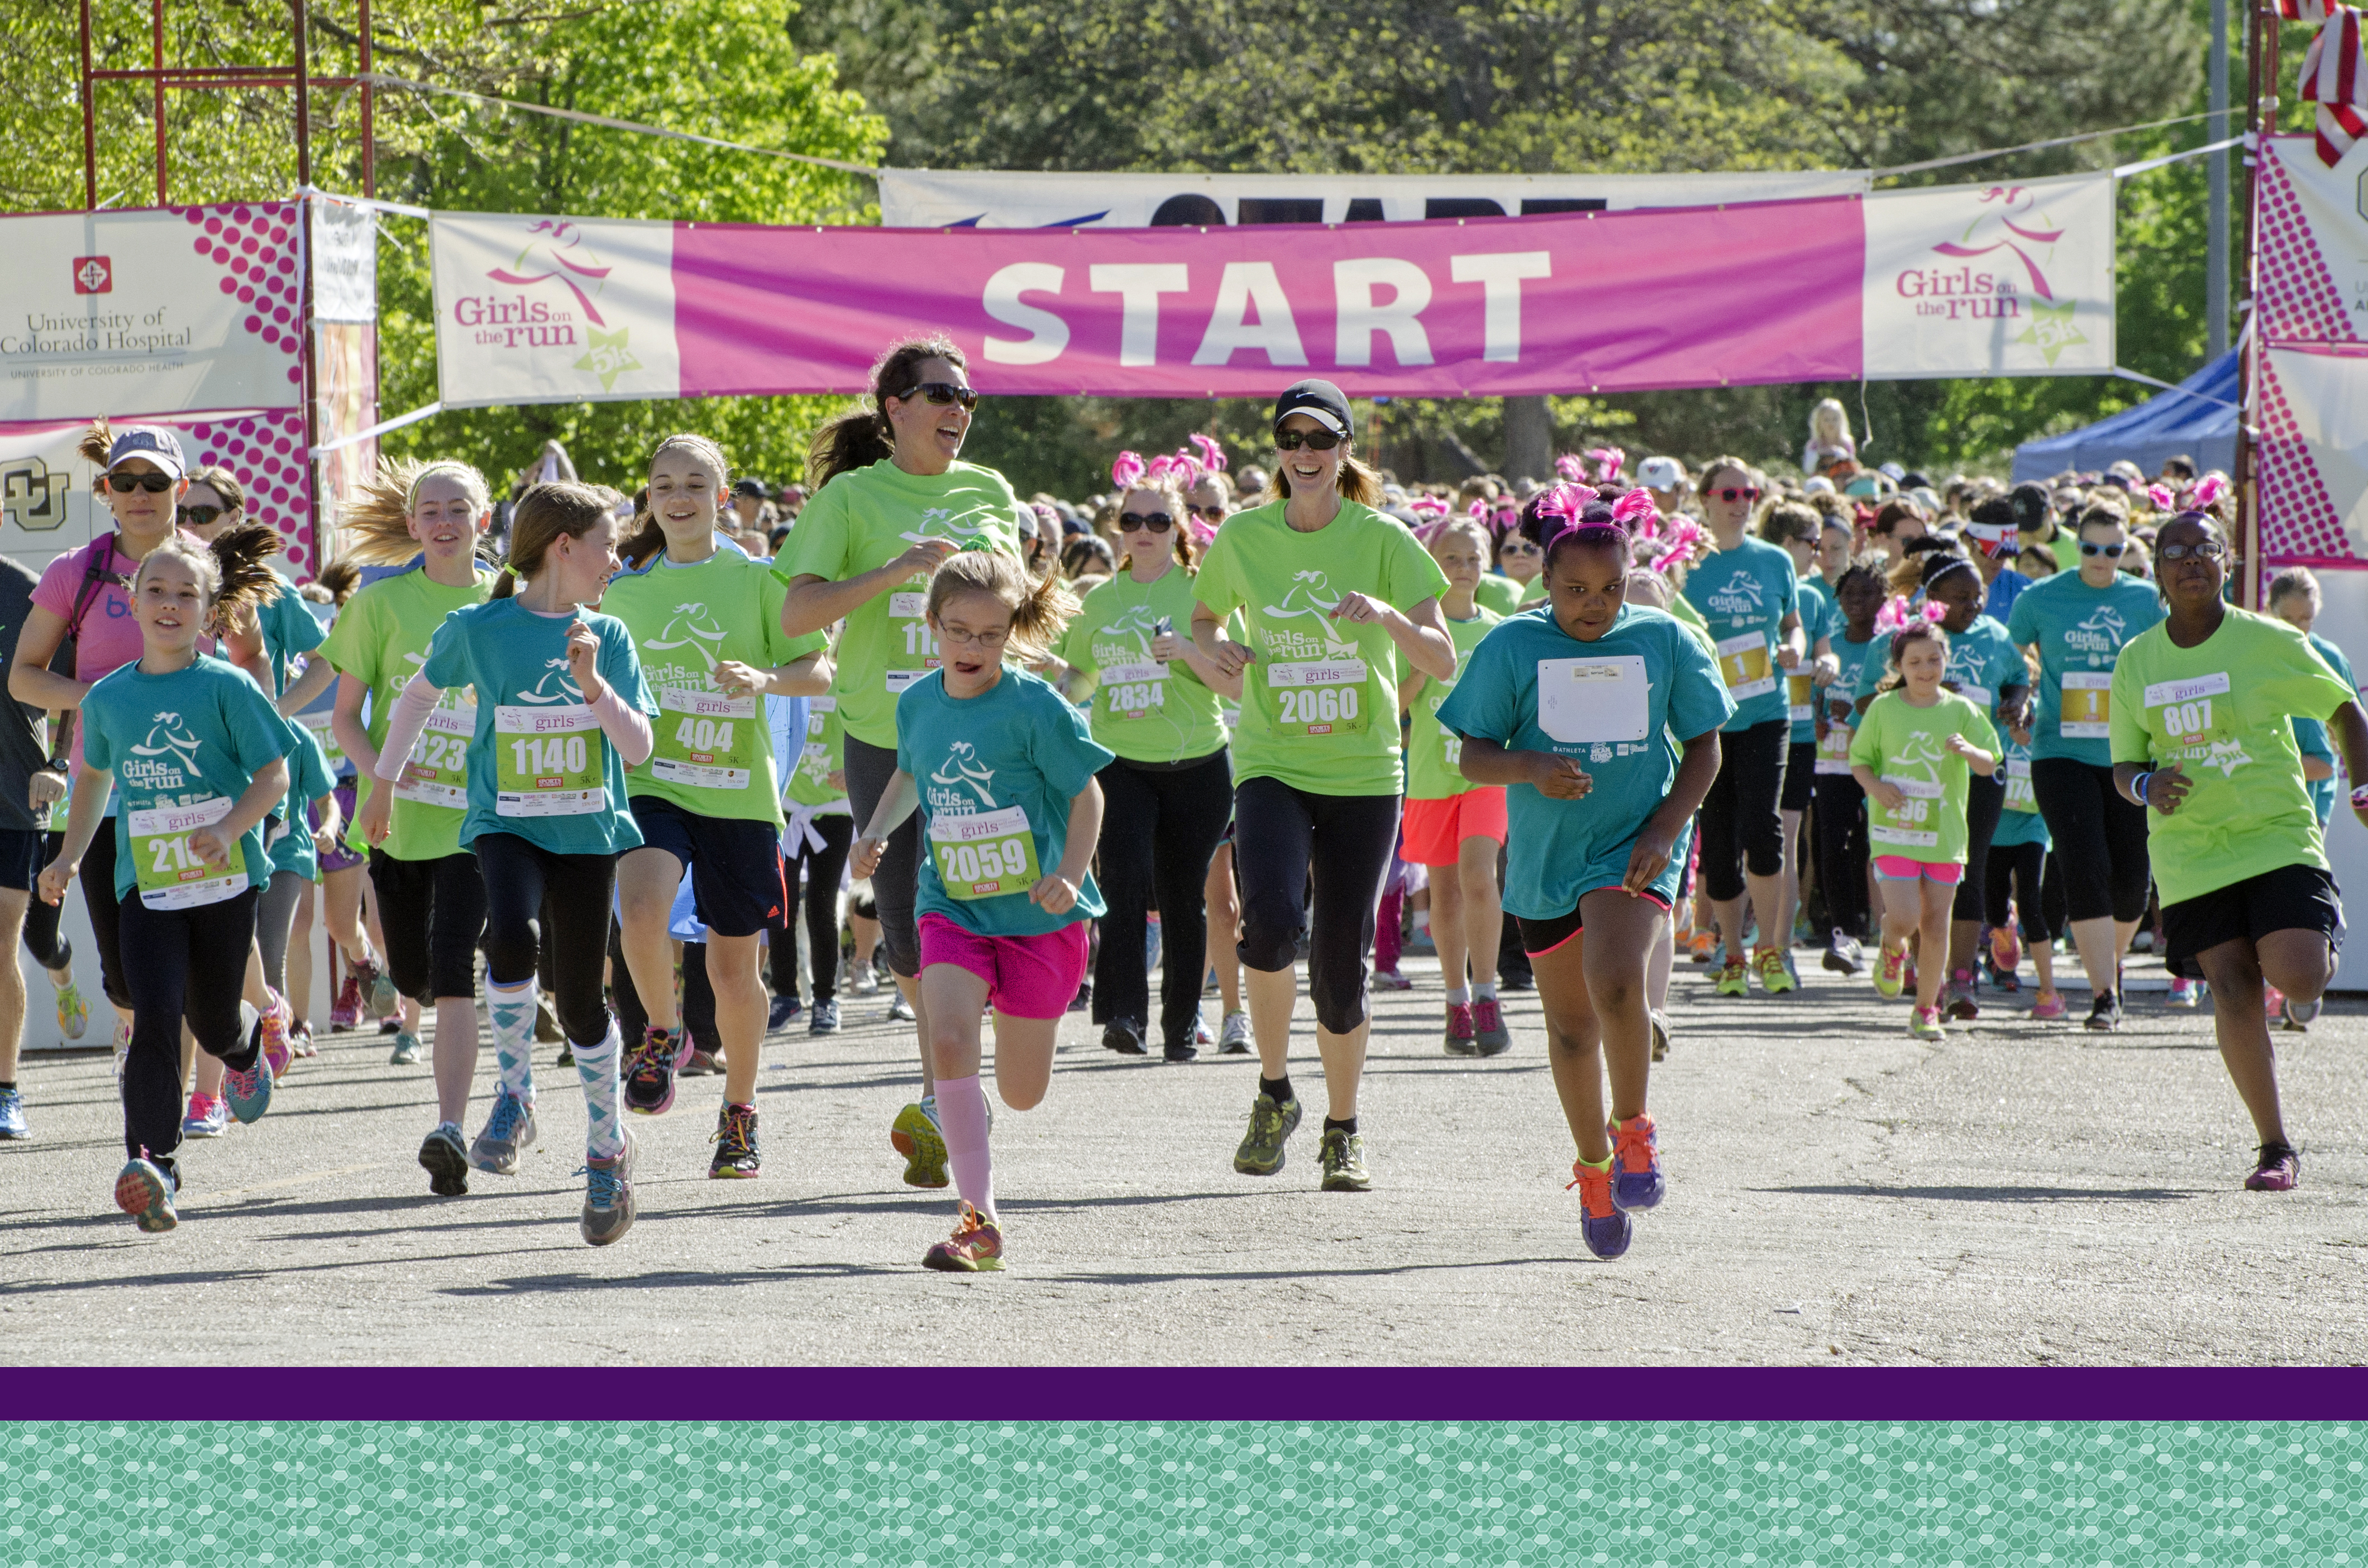 5K – Girls on the Run of the Rockies